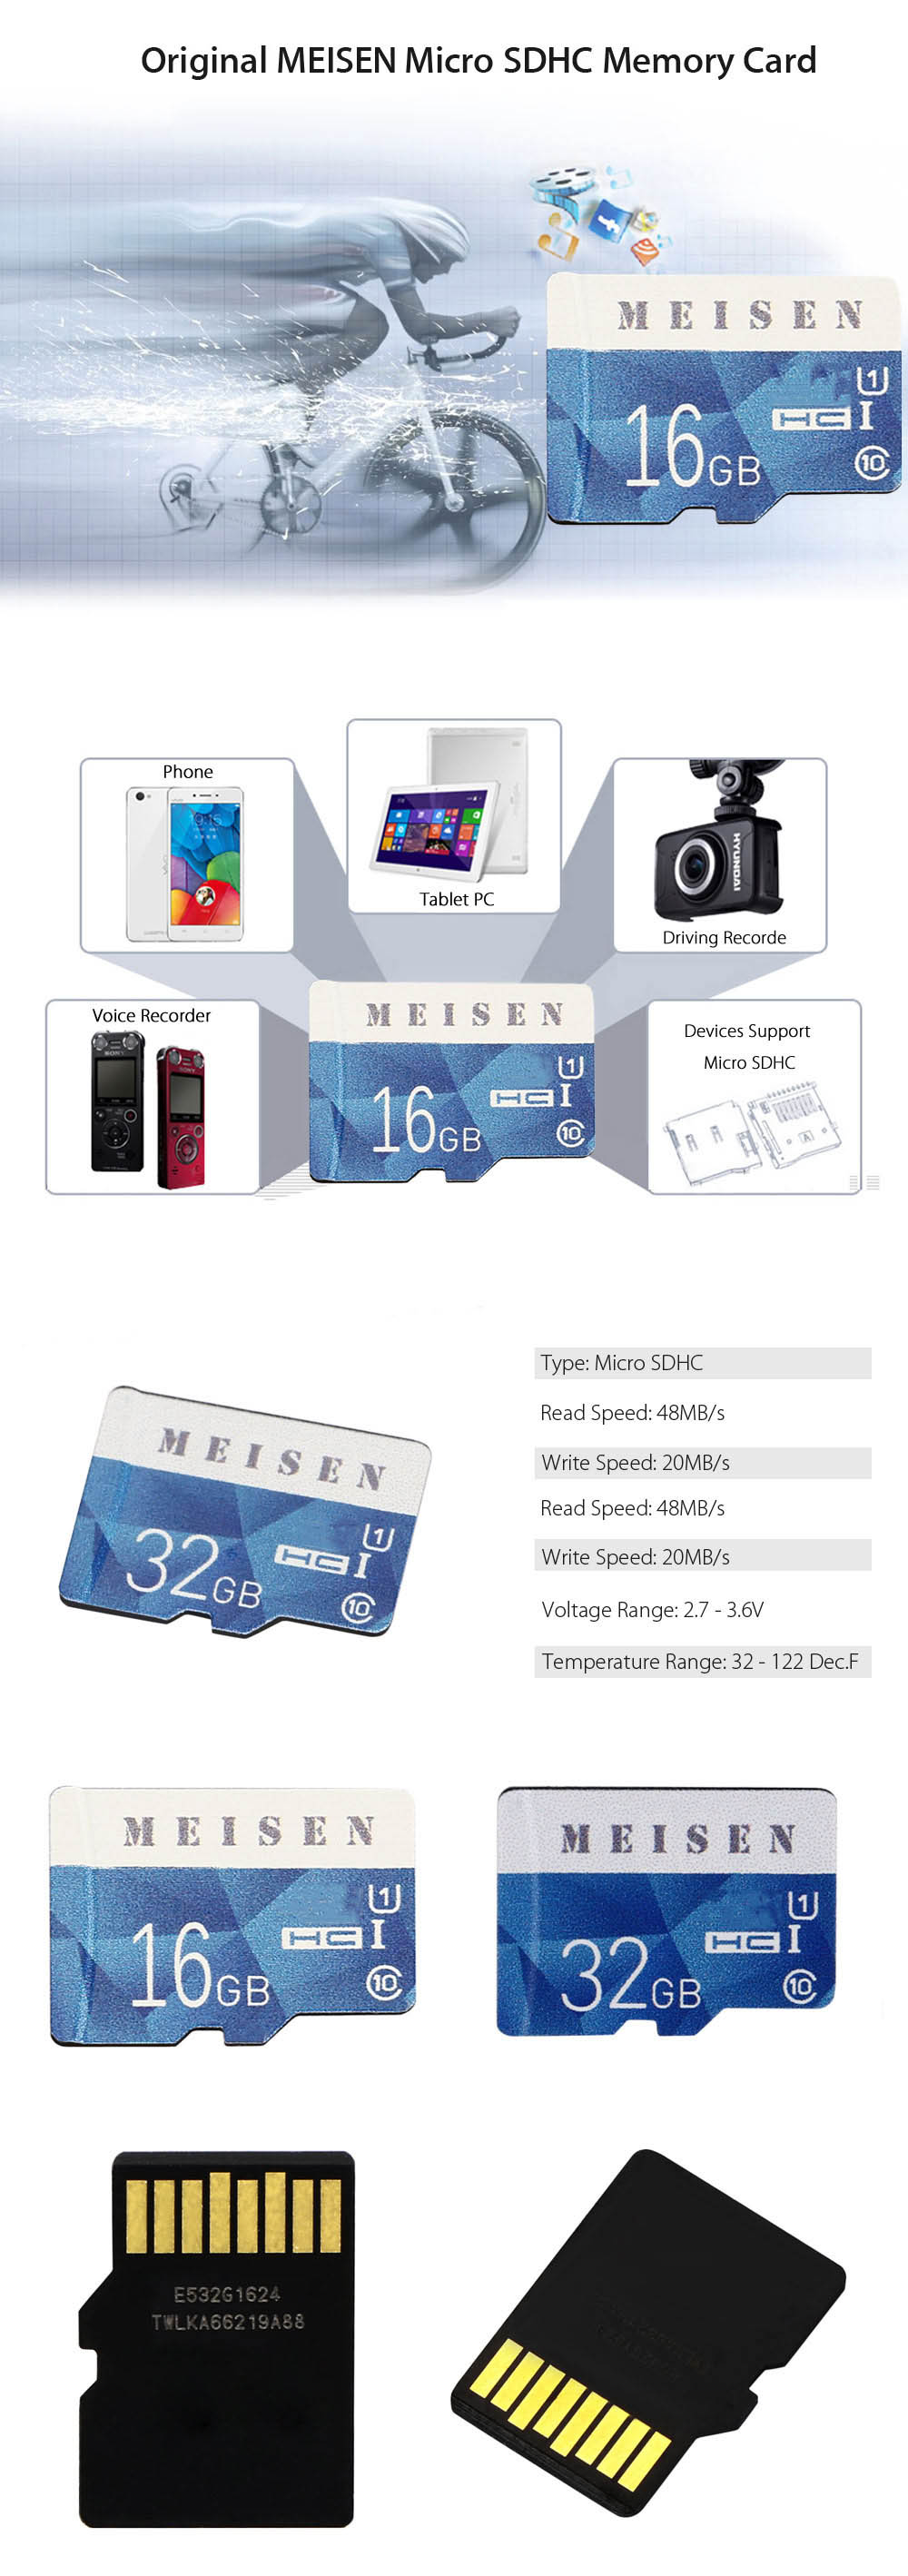 Original MEISEN 32GB Micro SDHC Memory Card Storage Device